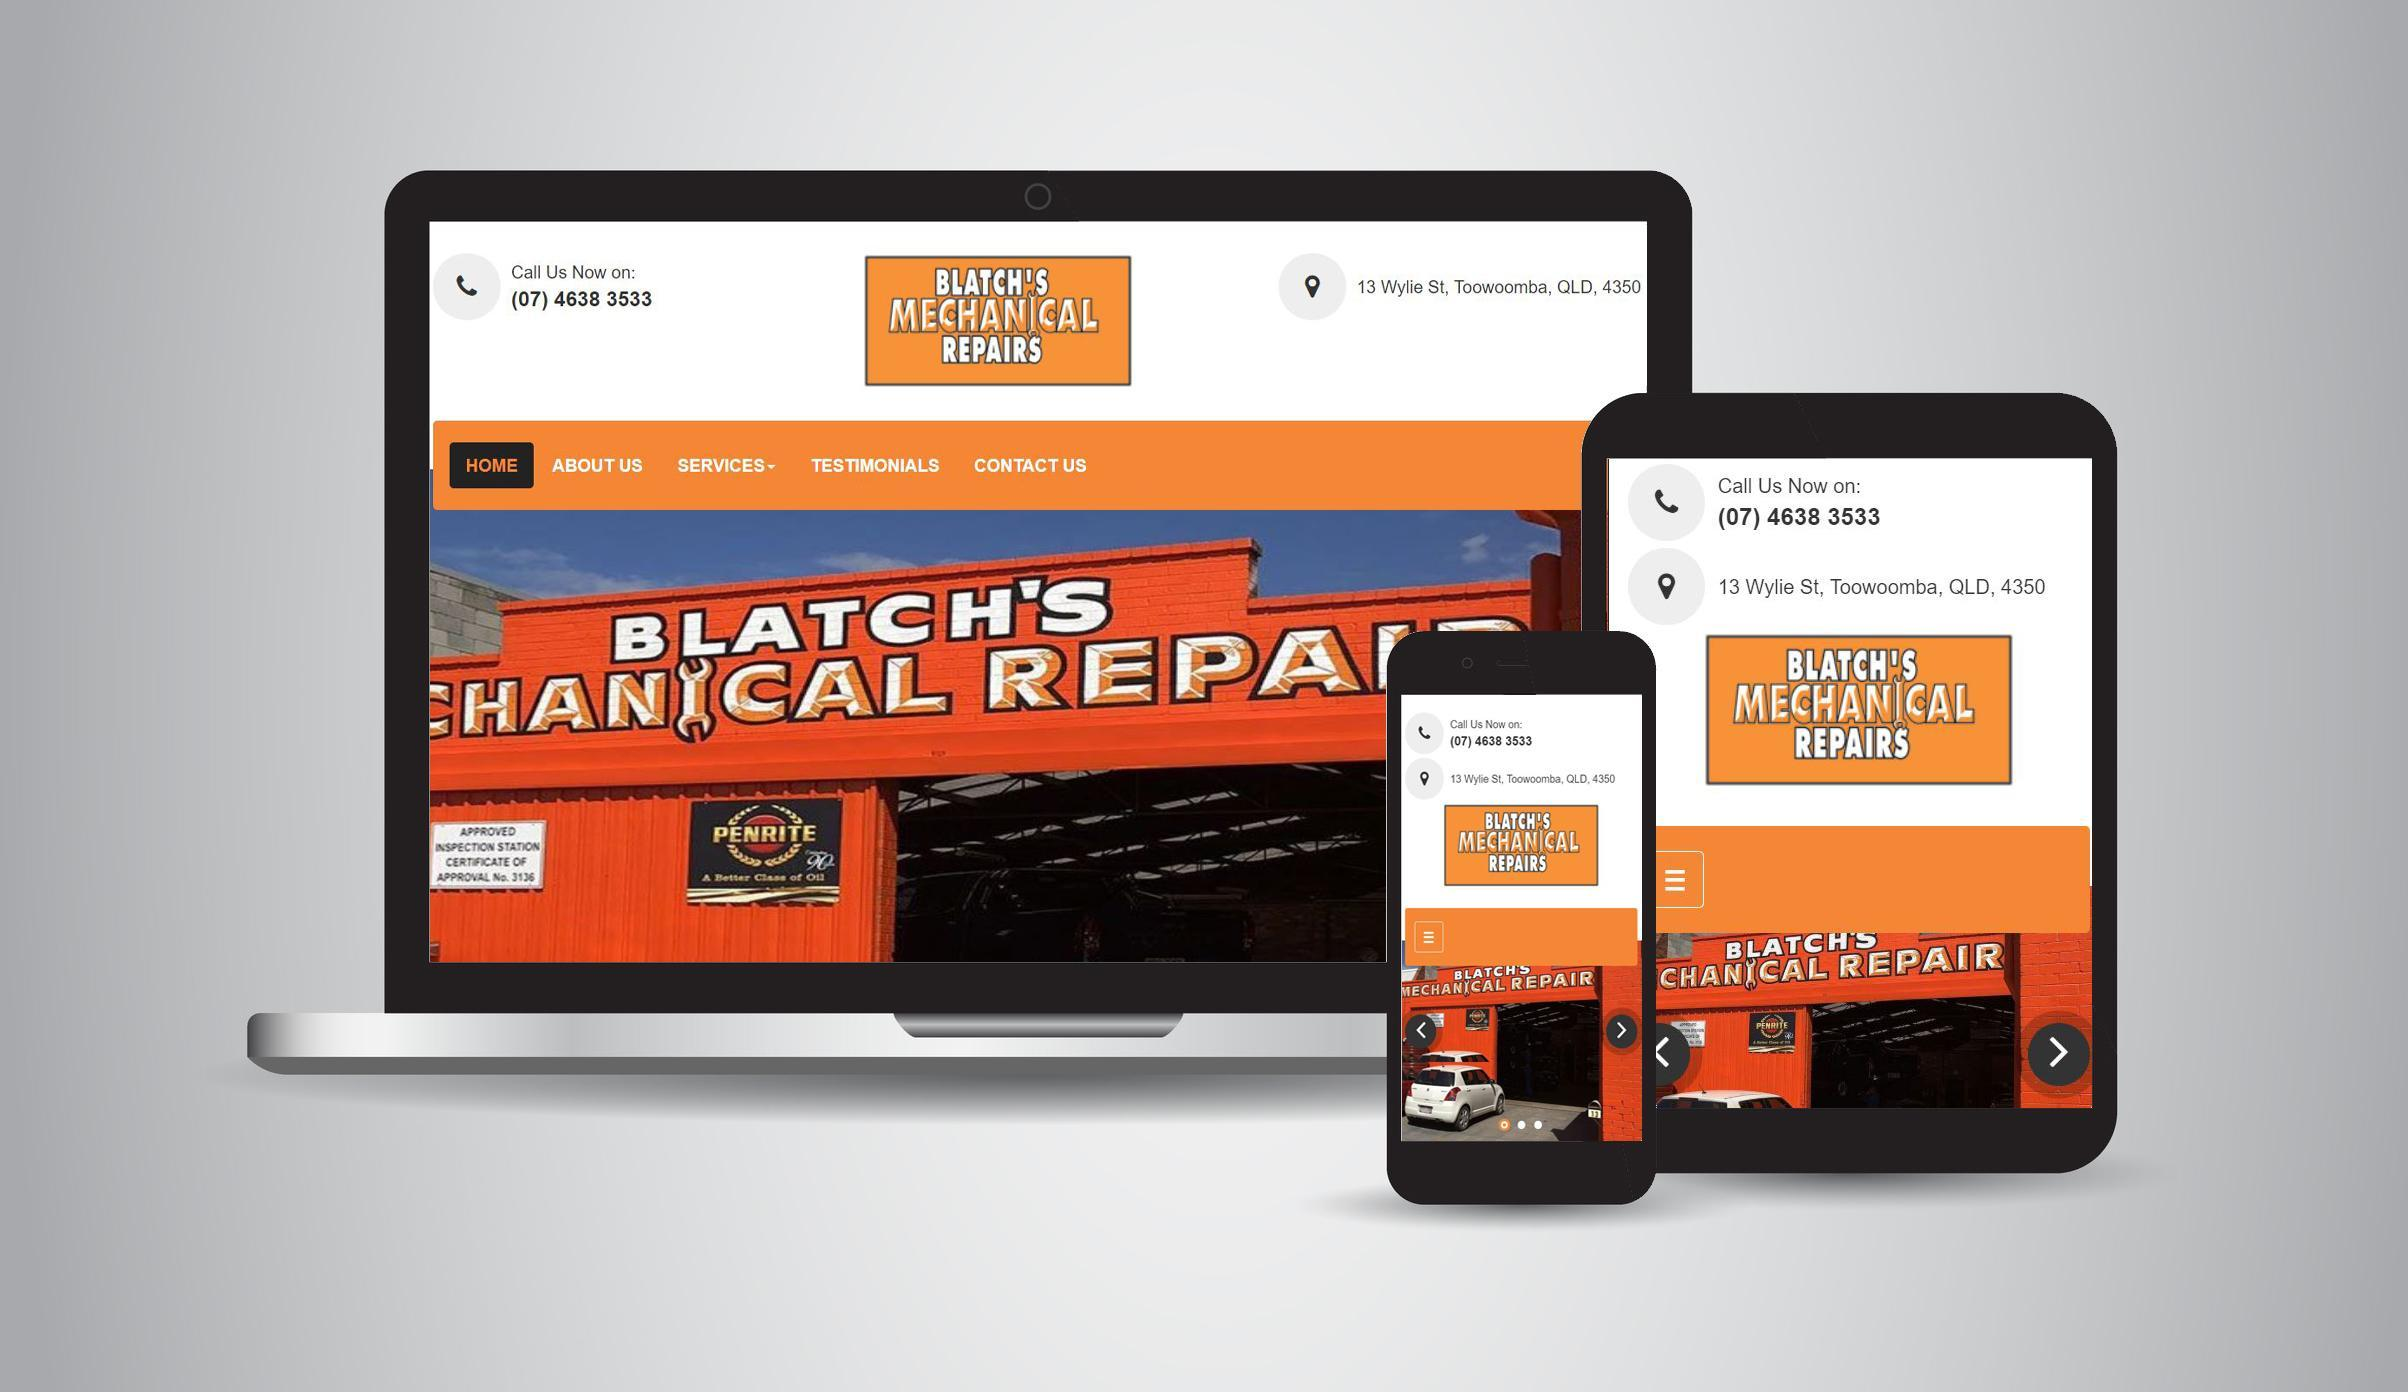 Blatch's Mechanical Repairs - Mechanical, Tyres, Suspension, Truck & 4x4 Accessories